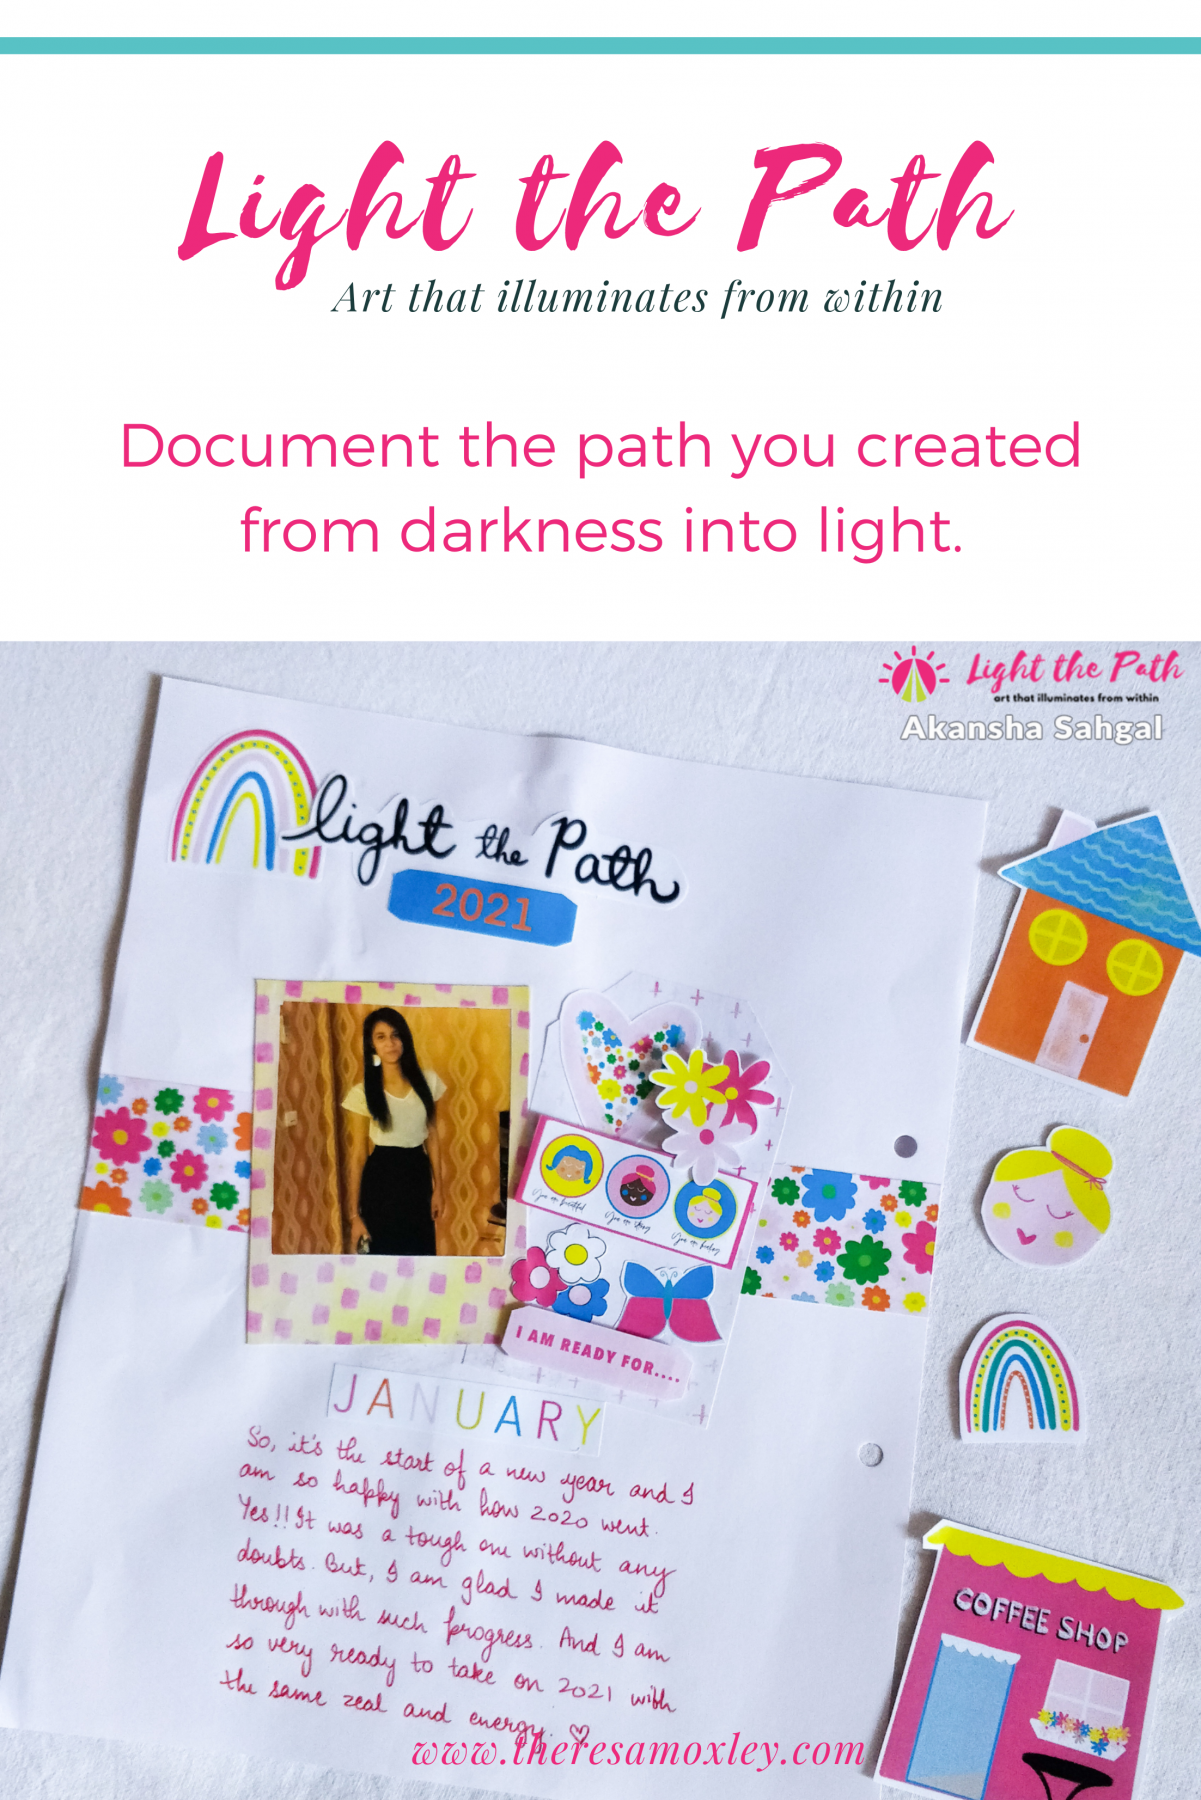 Light the Path Design Team Akansha Sahgal | January 2021 Where We Are Now